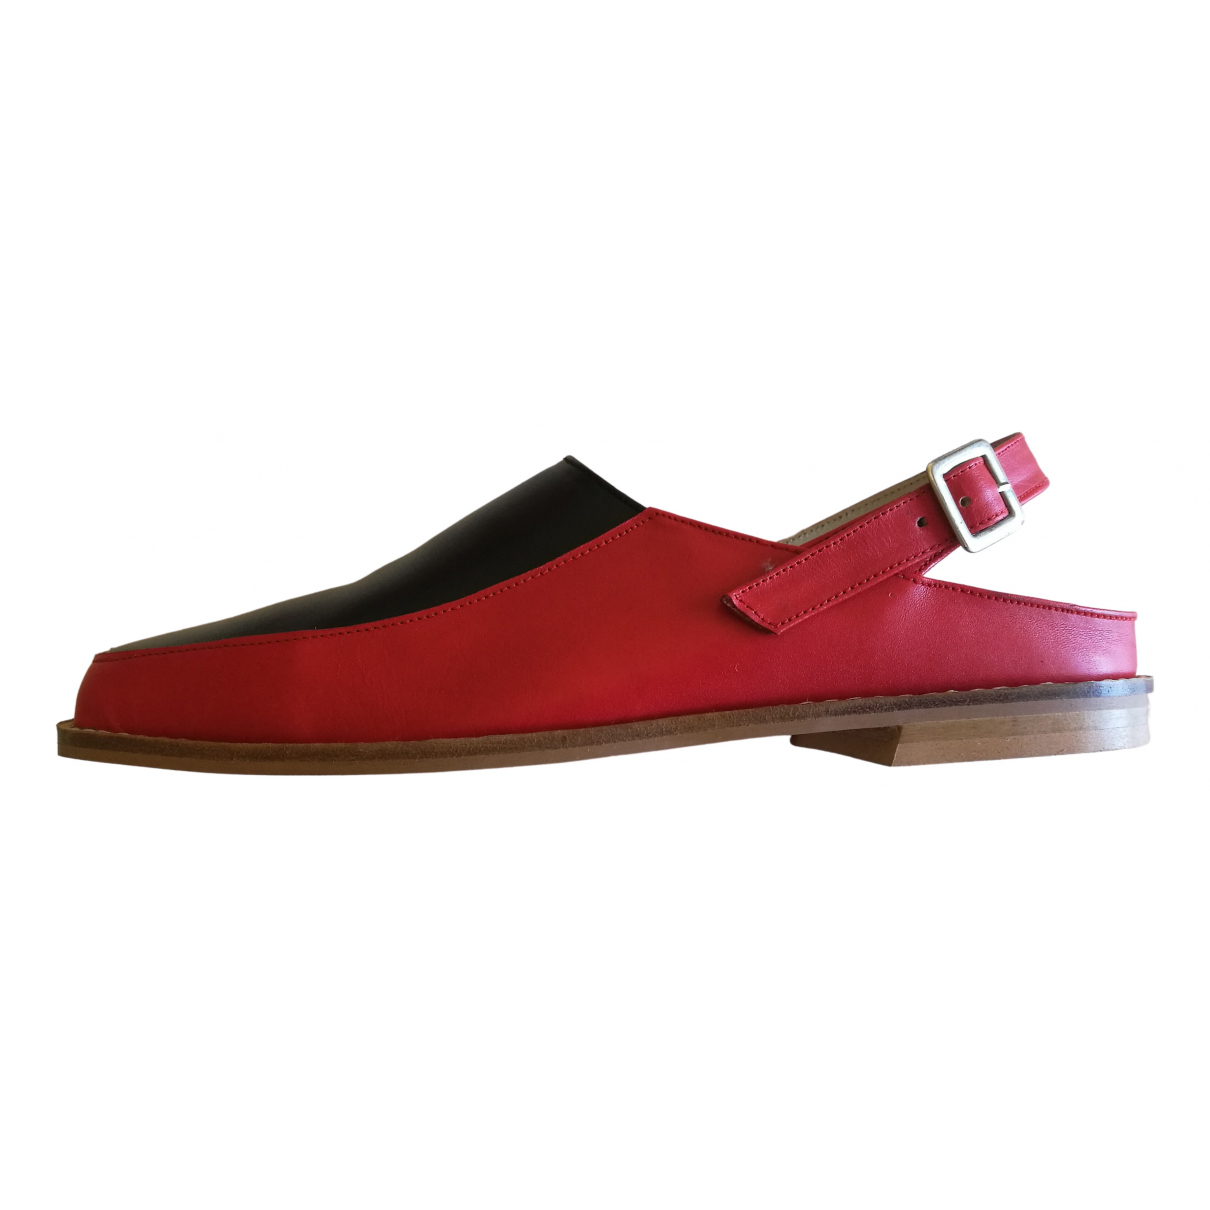 Non Signé / Unsigned \N Red Leather Mules & Clogs for Women 37 EU